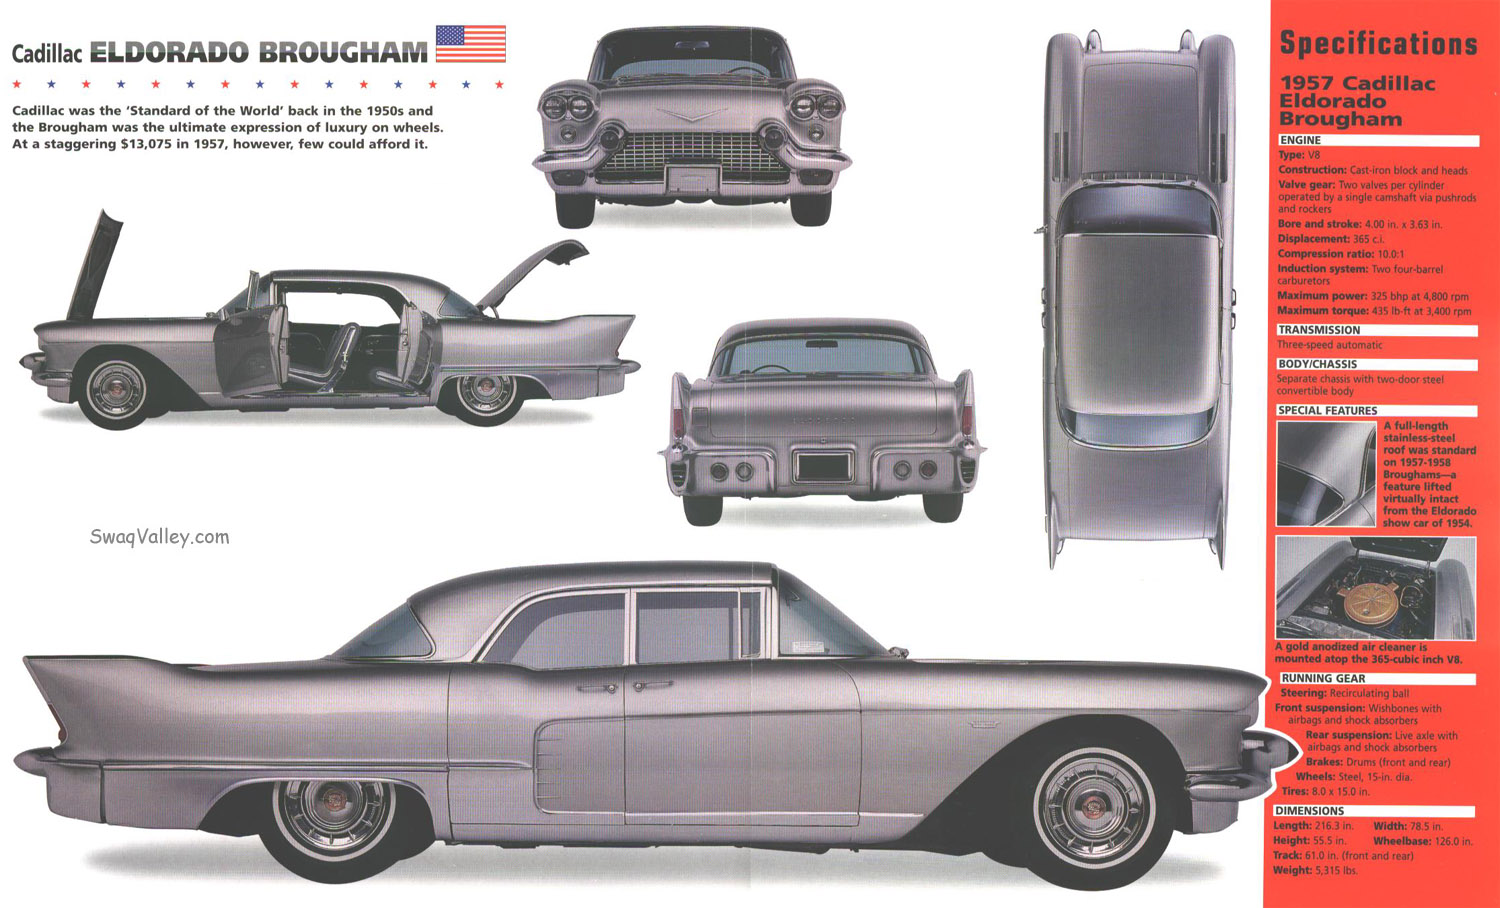 Cadillac Eldorado Brougham - cars catalog, specs, features, photos, videos,